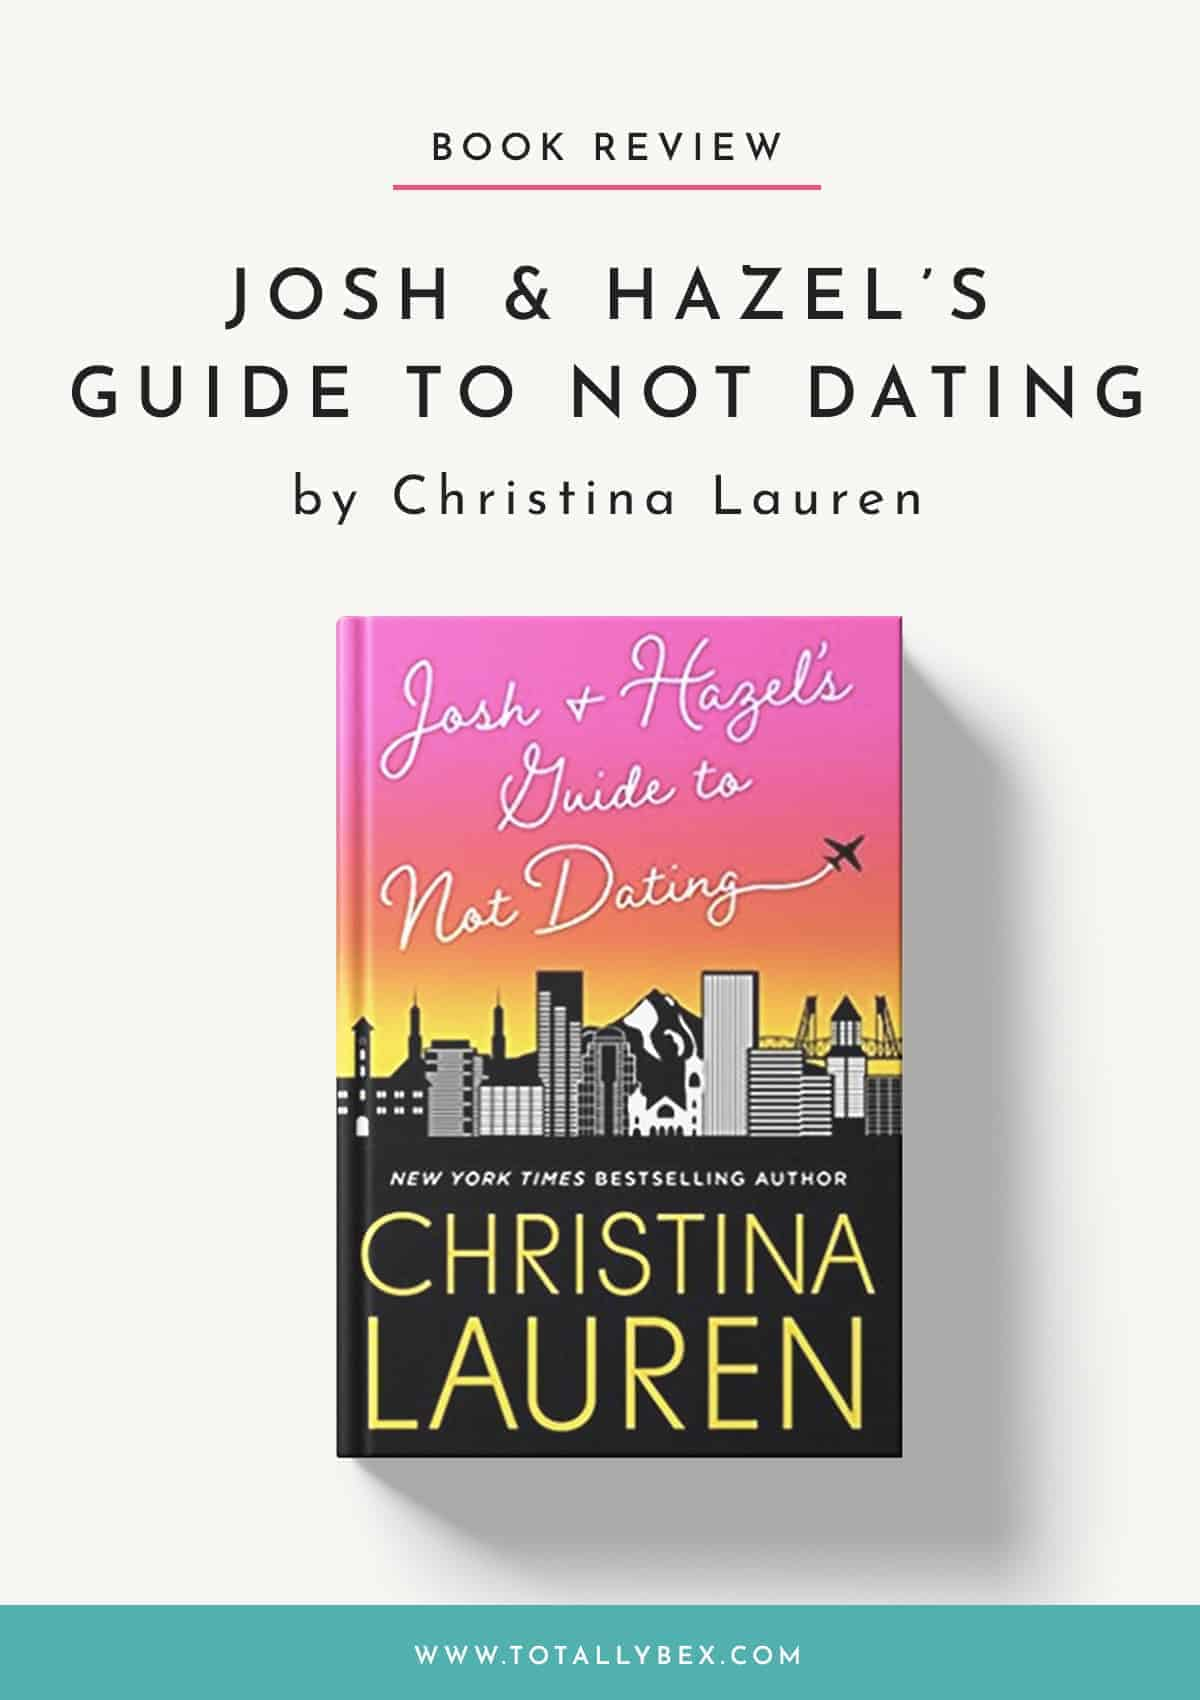 Josh and Hazel's Guide to Not Dating-Book Review